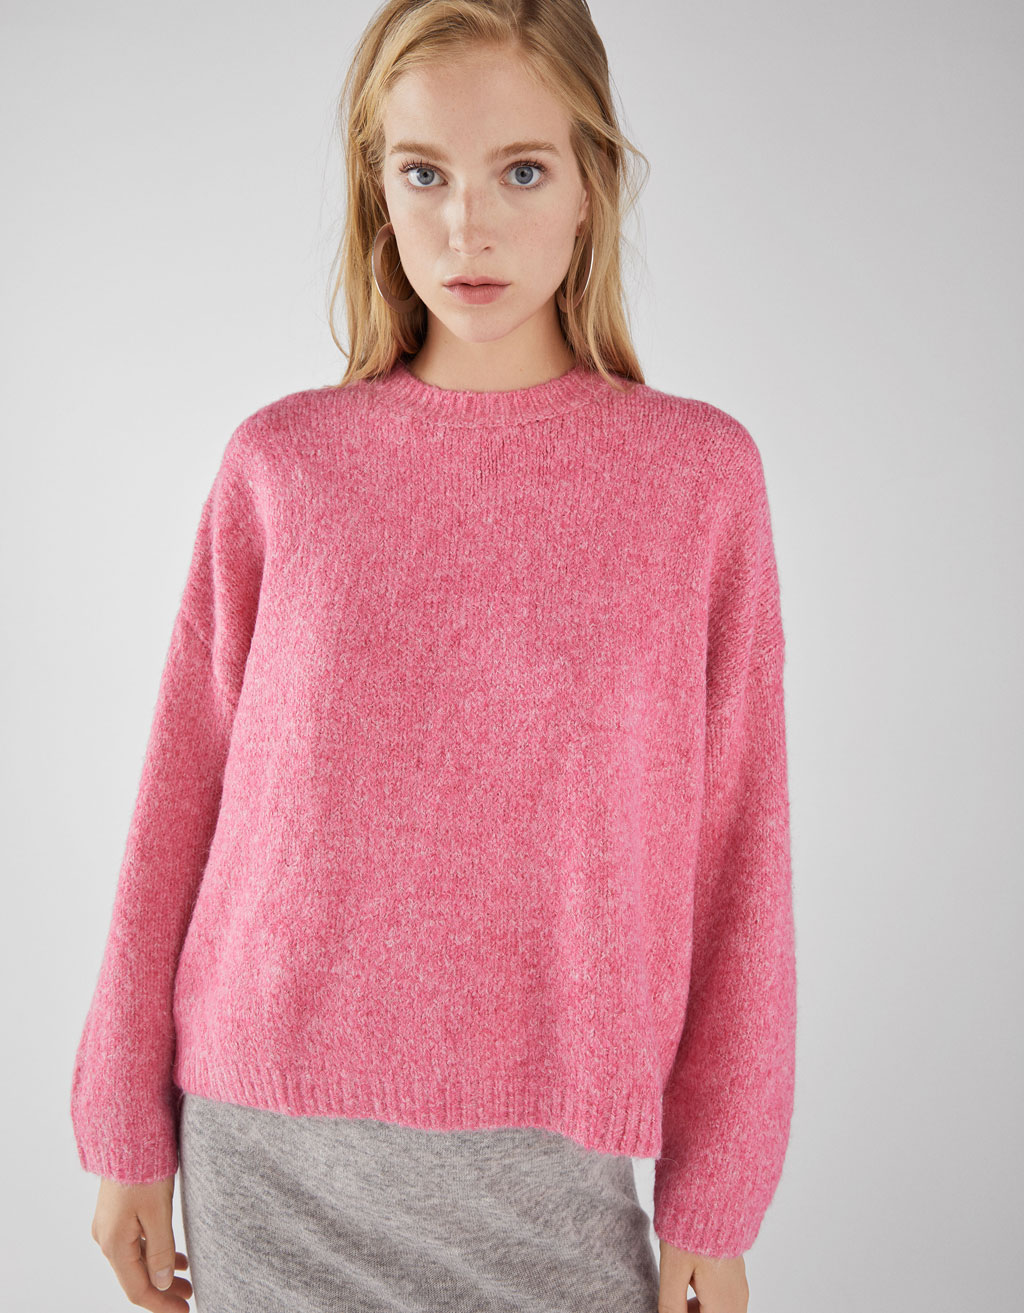 Cropped long sleeve sweater